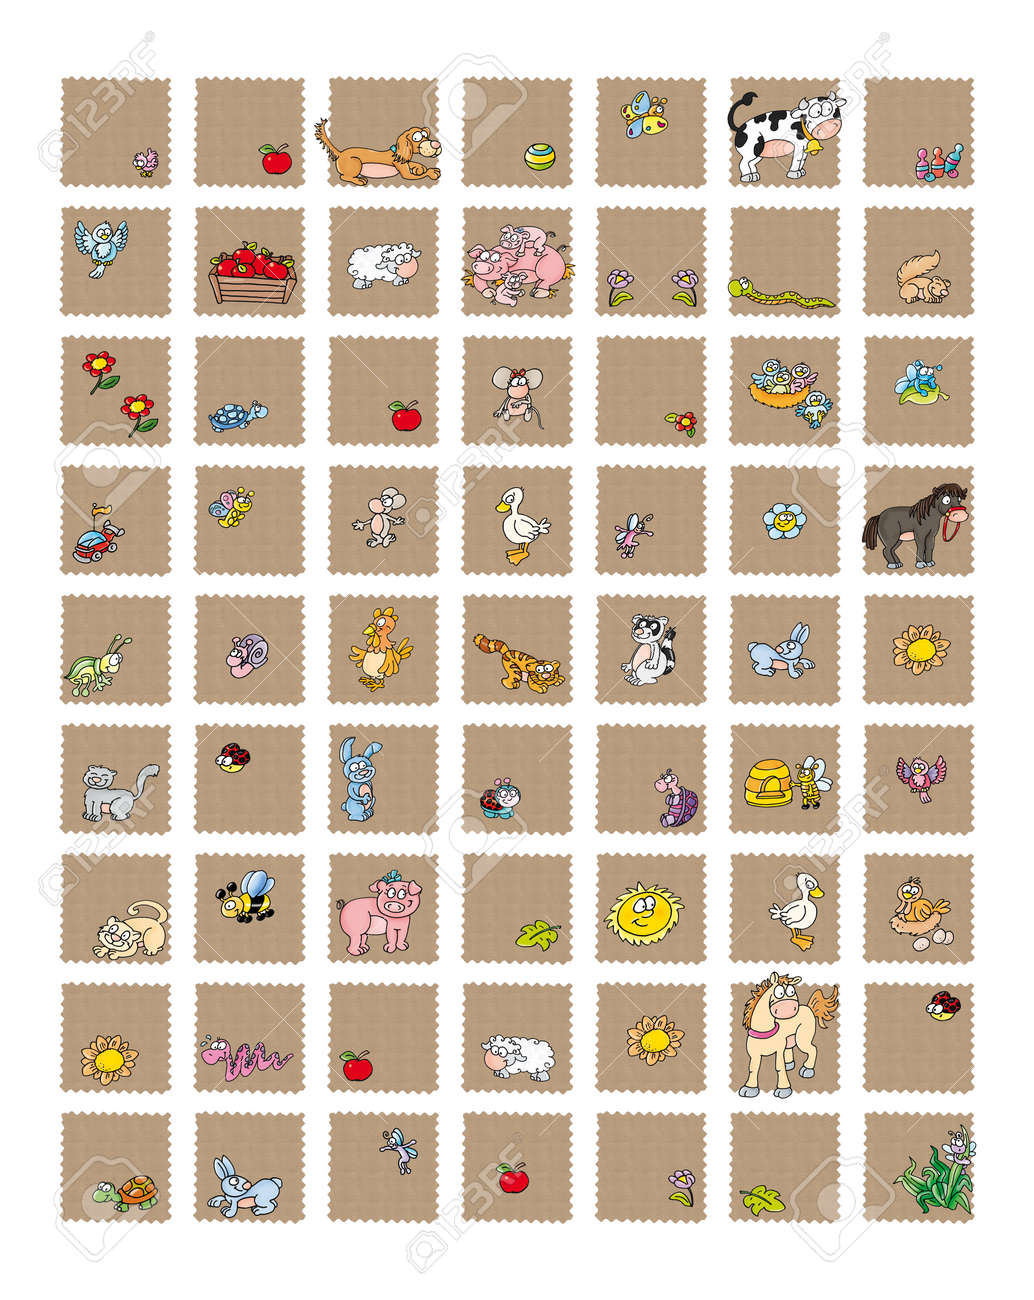 icons for sites selling art crafts and gifts, and stationery